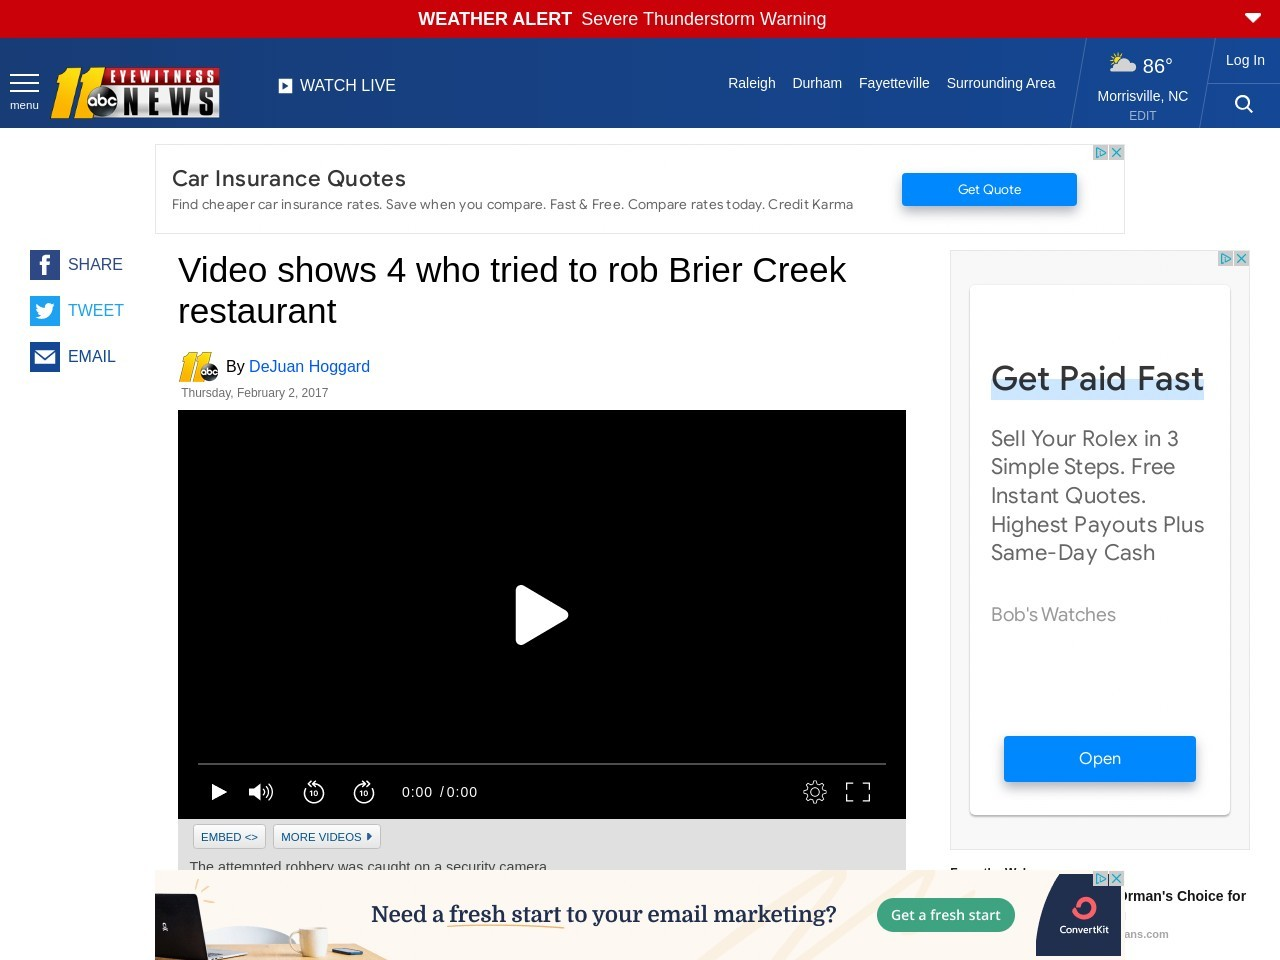 Video shows 4 who tried to rob Brier Creek restaurant